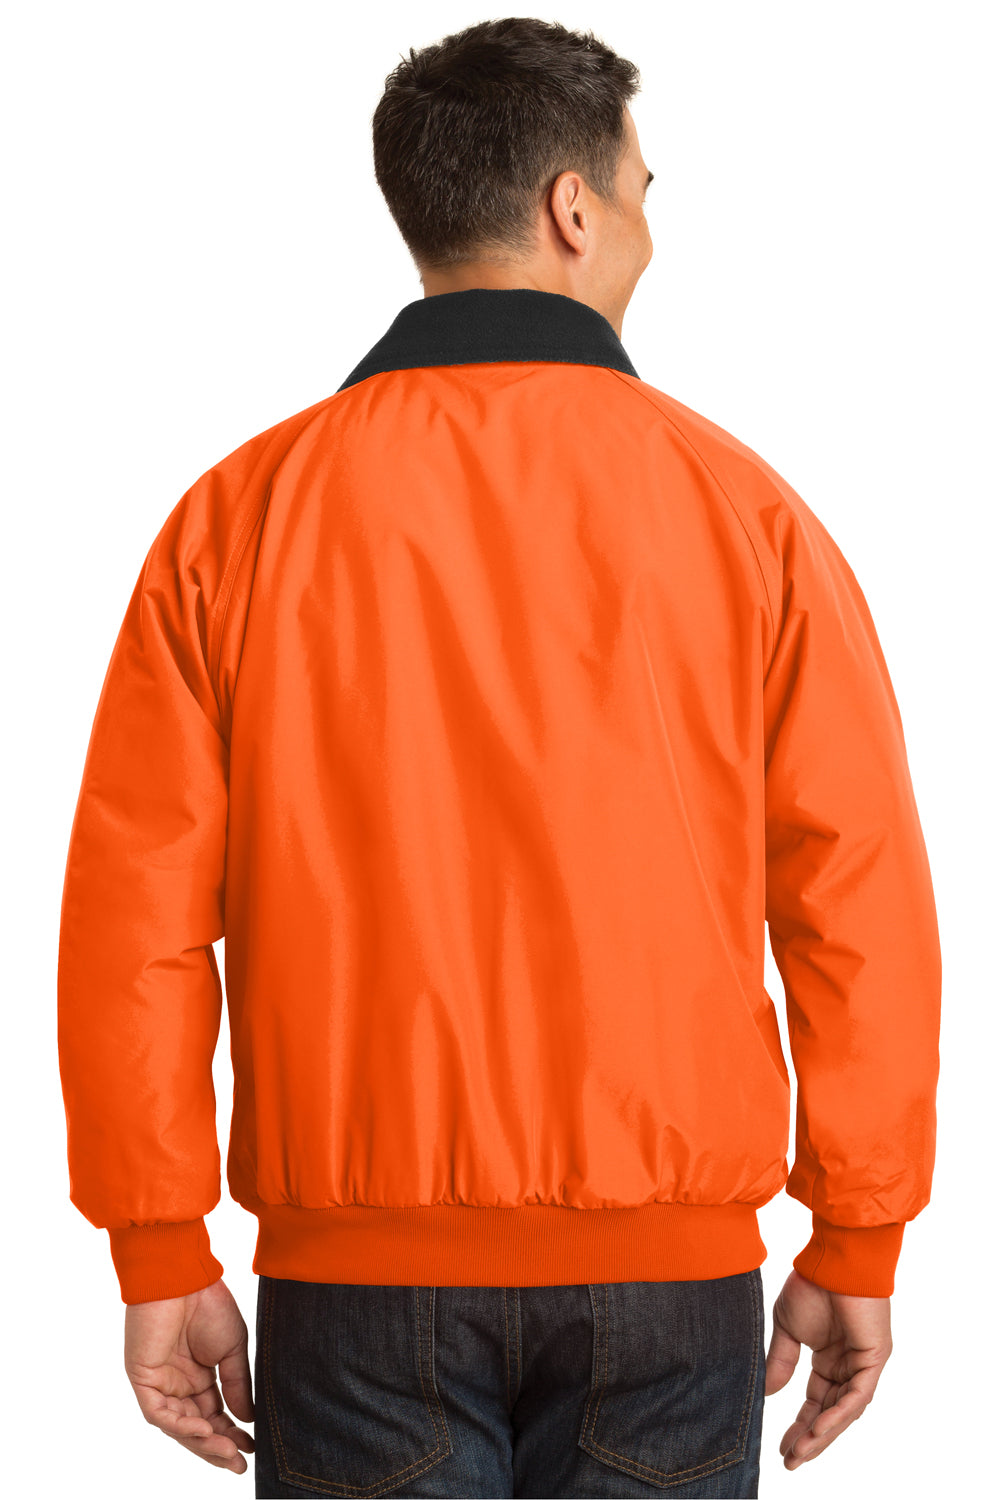 Port Authority J754S Mens Challenger Wind & Water Resistant Full Zip Jacket Safety Orange Back